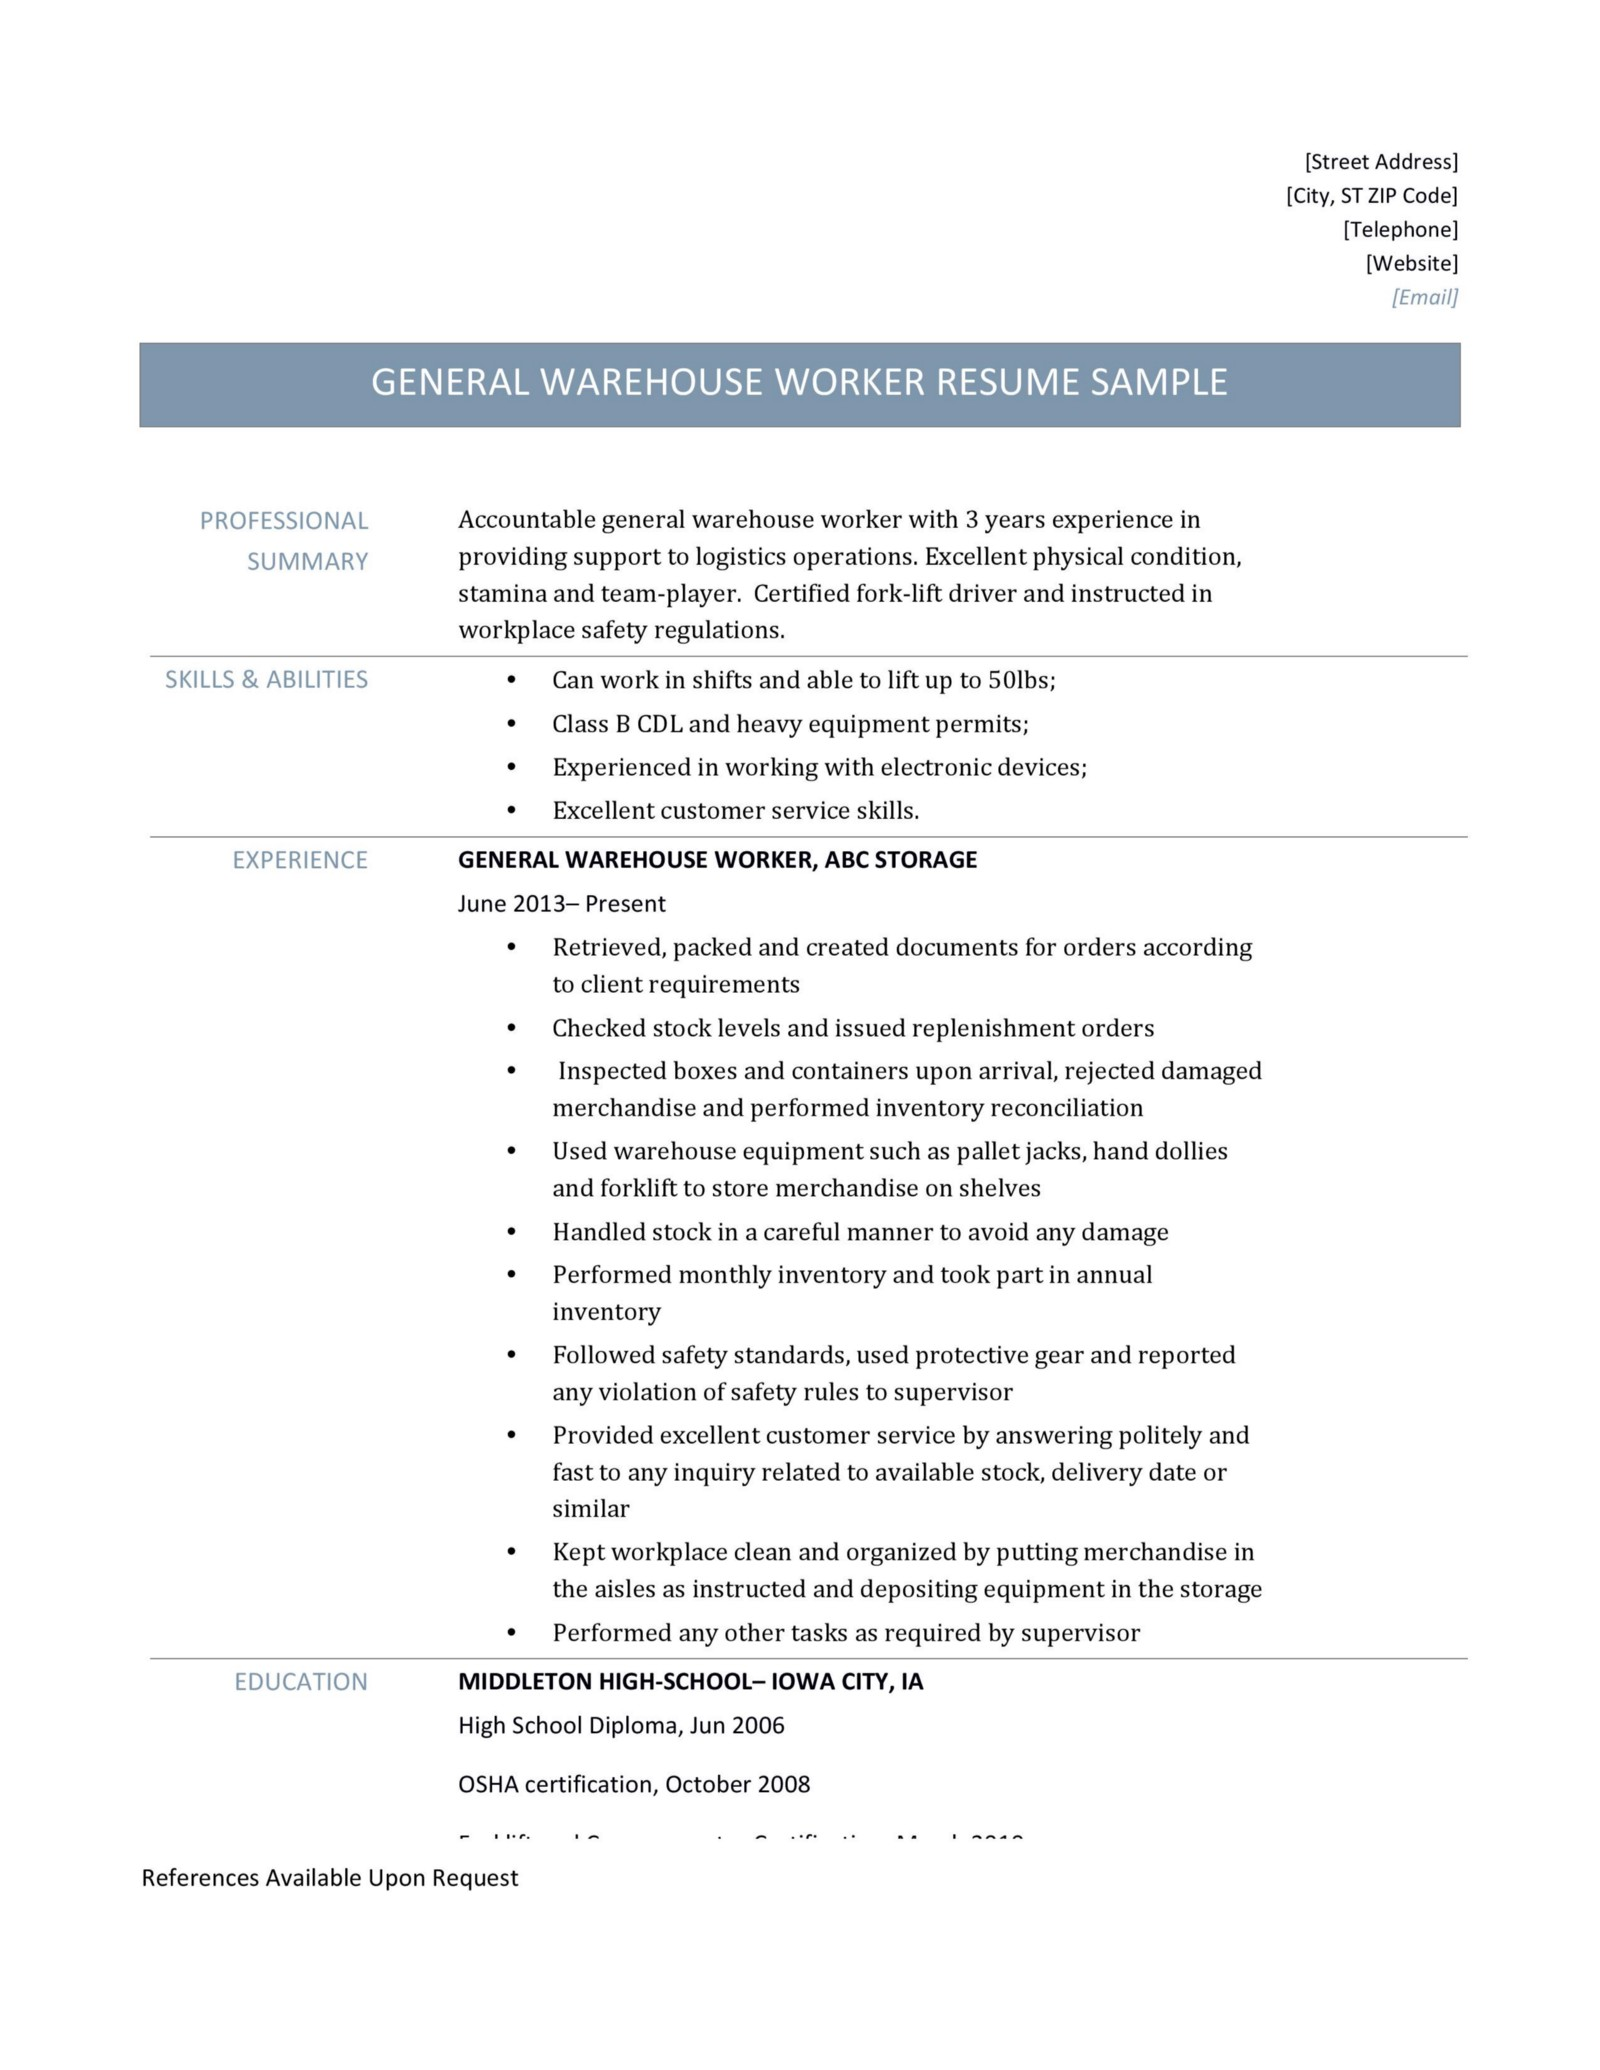 General Warehouse Worker resume-page-001